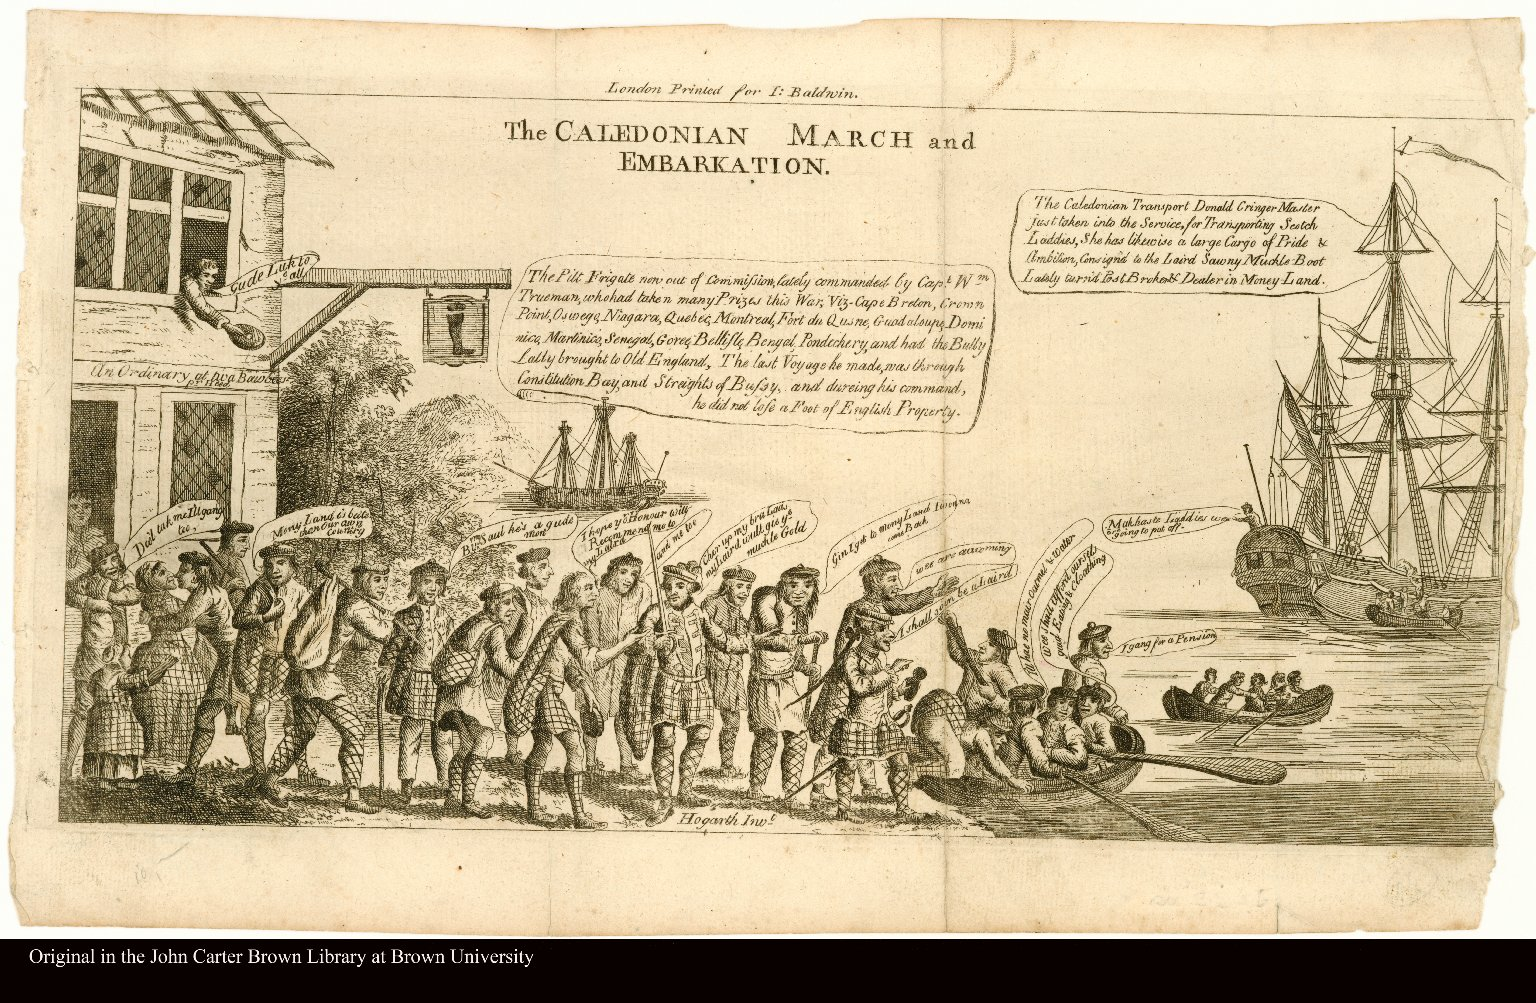 The CALEDONIAN MARCH and EMBARKATION.